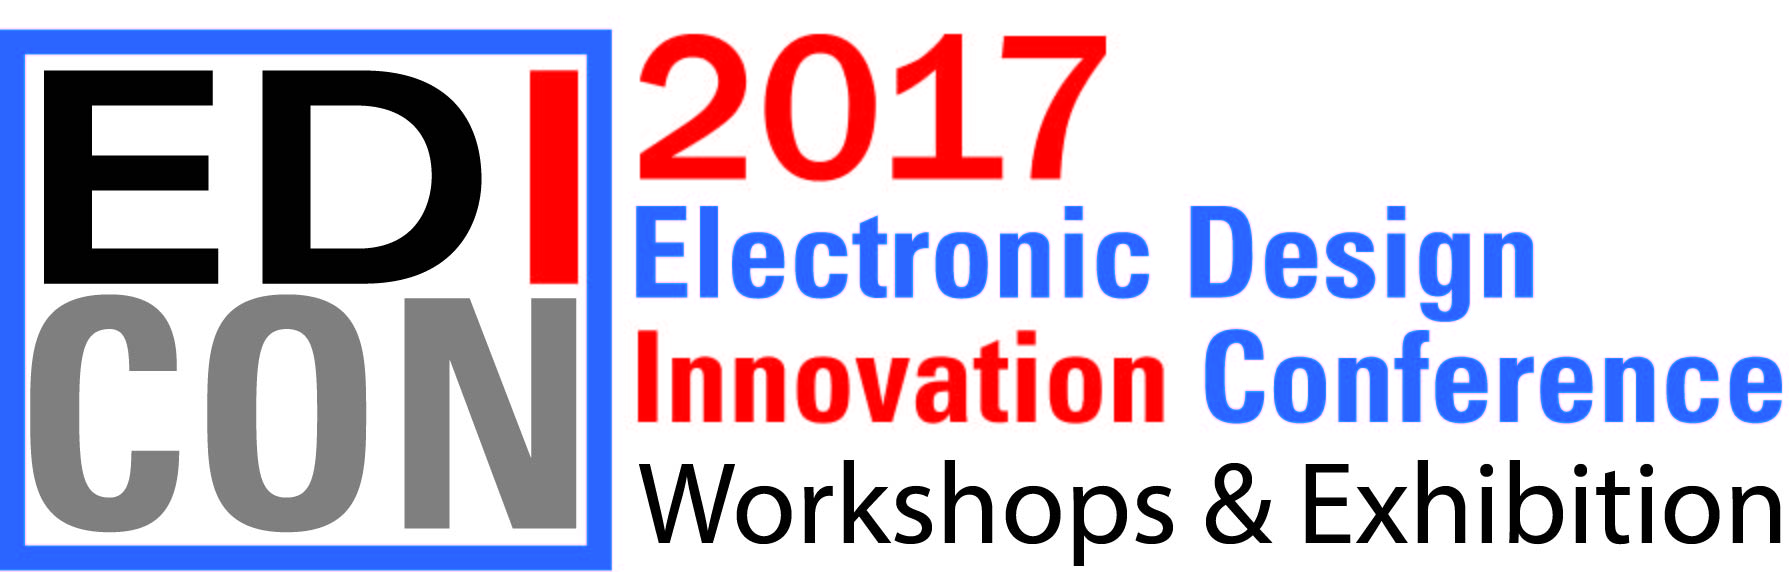 EDICON 2017 | Electronic Design Innovation Conference & Exhibition